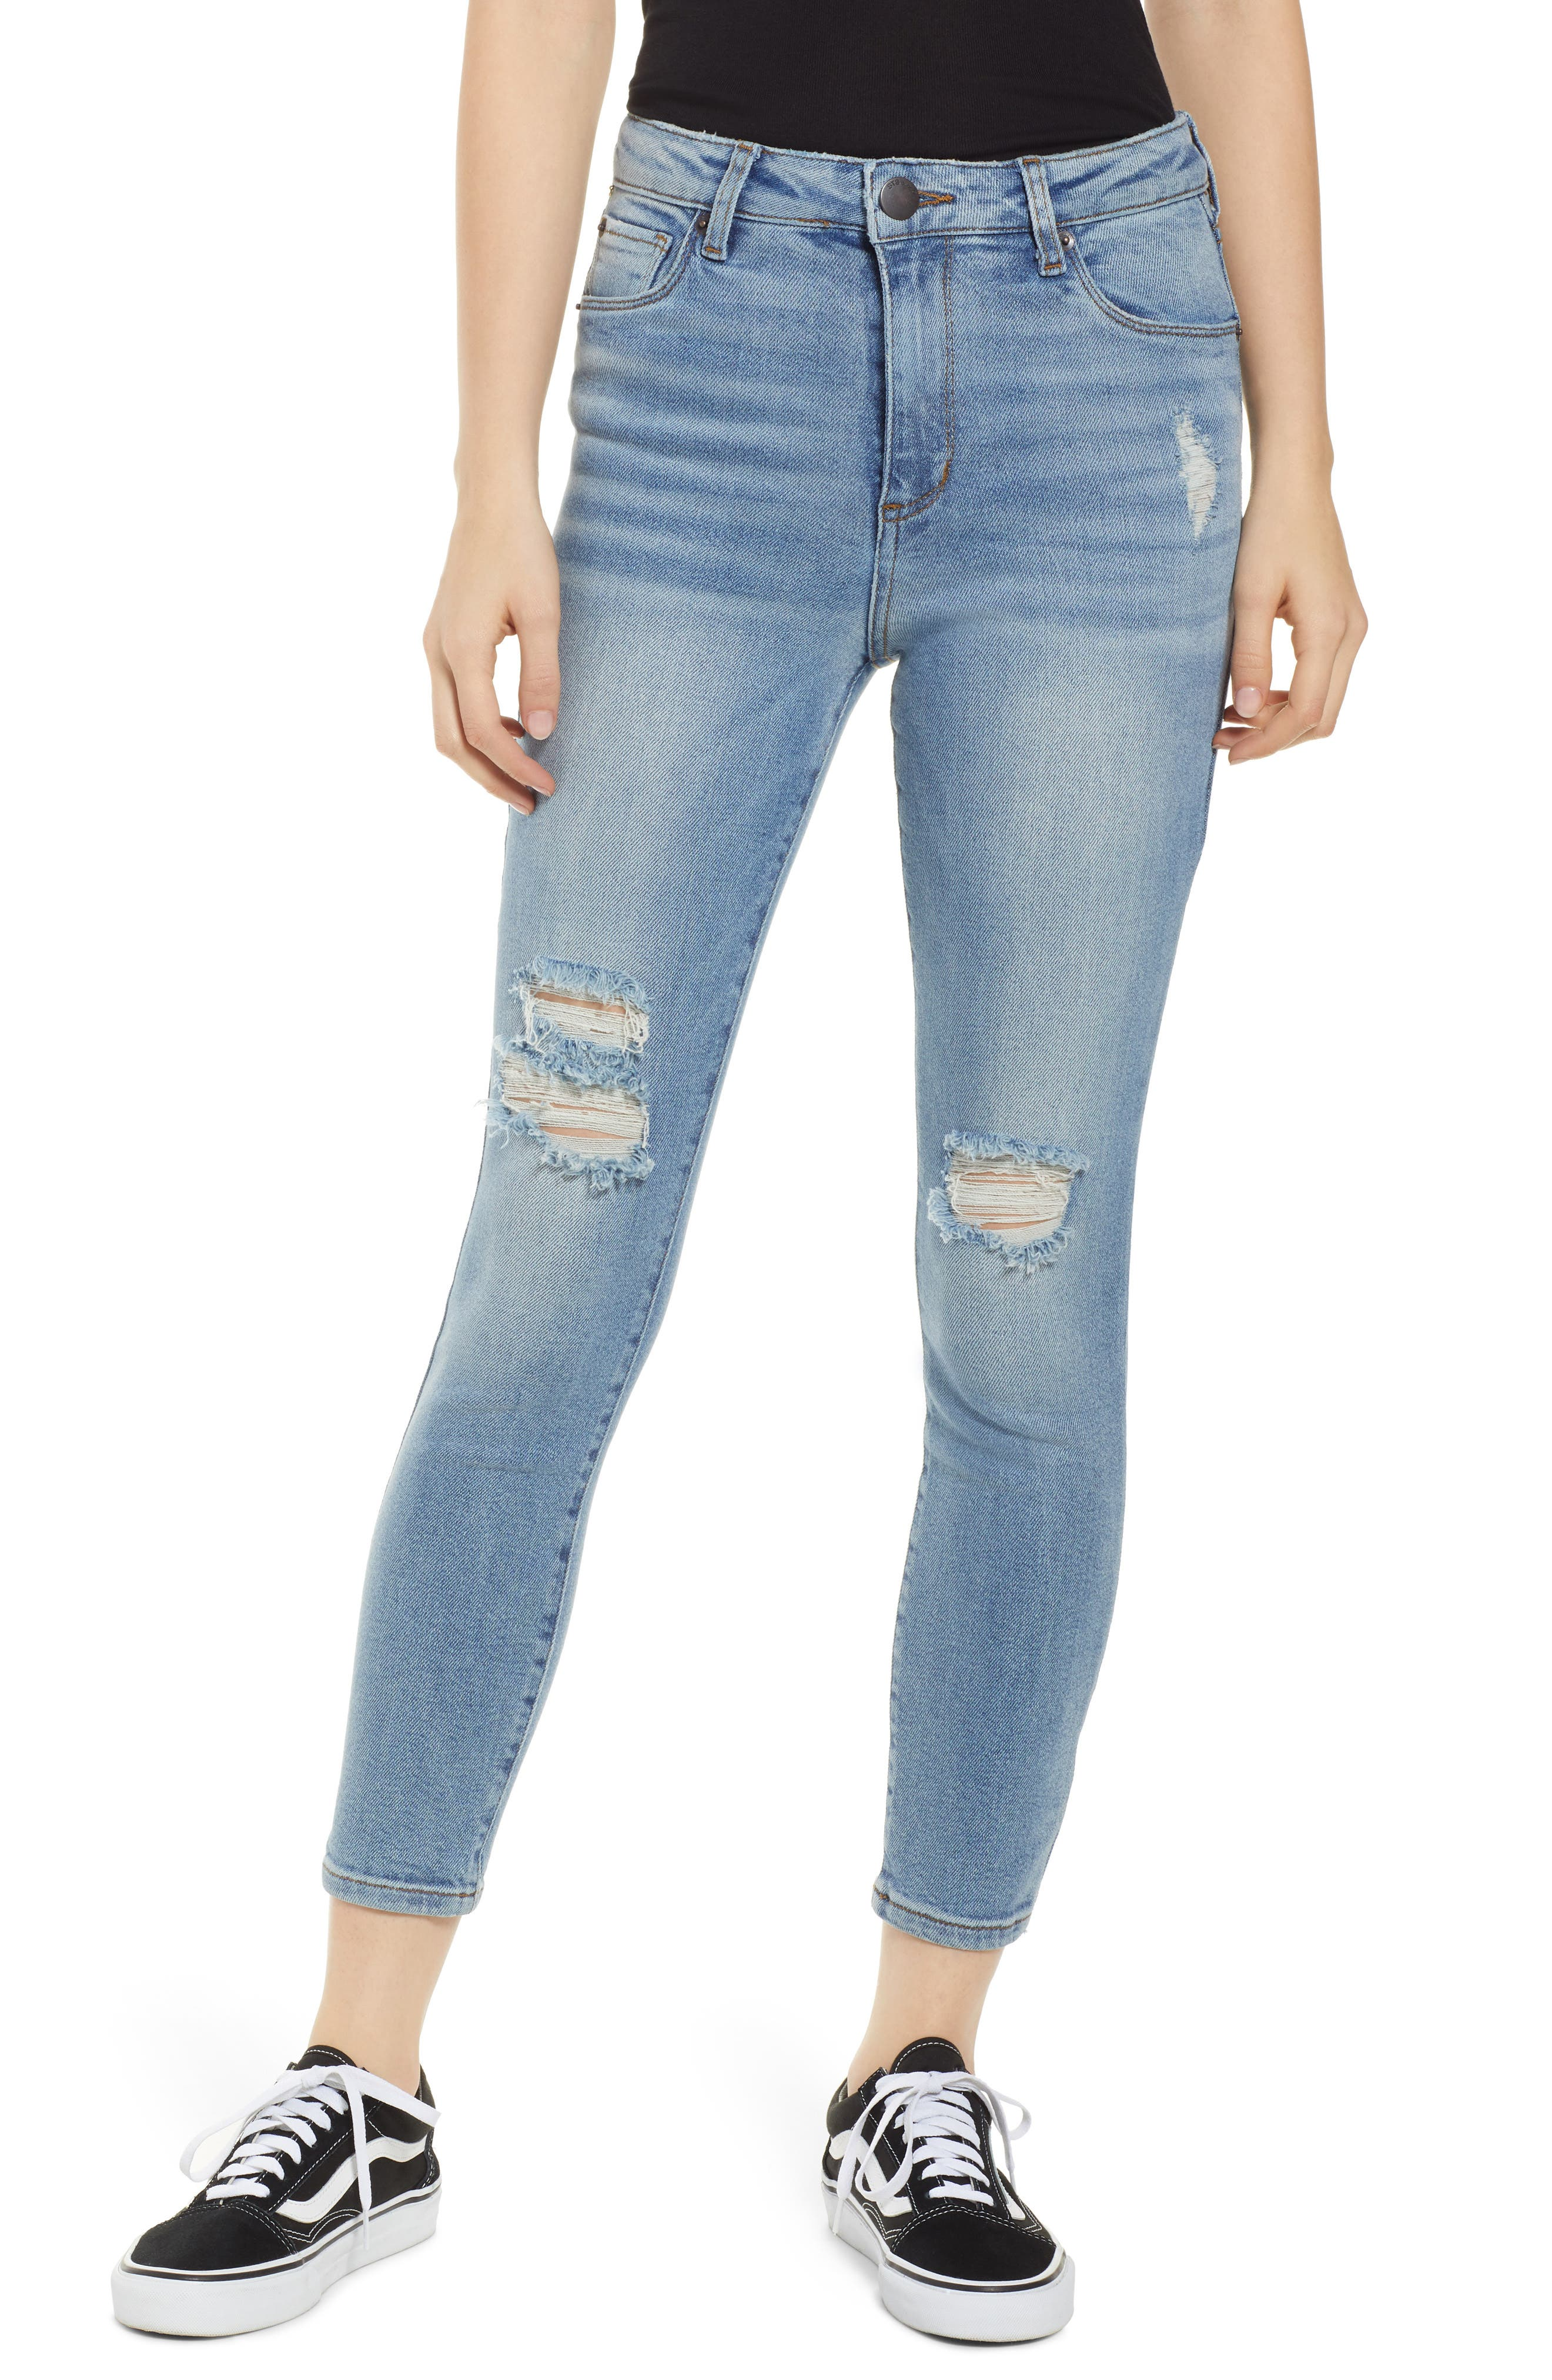 Brie High Waist Ripped Skinny Jeans,                             Main thumbnail 1, color,                             BRADFORD LIGHT WASH